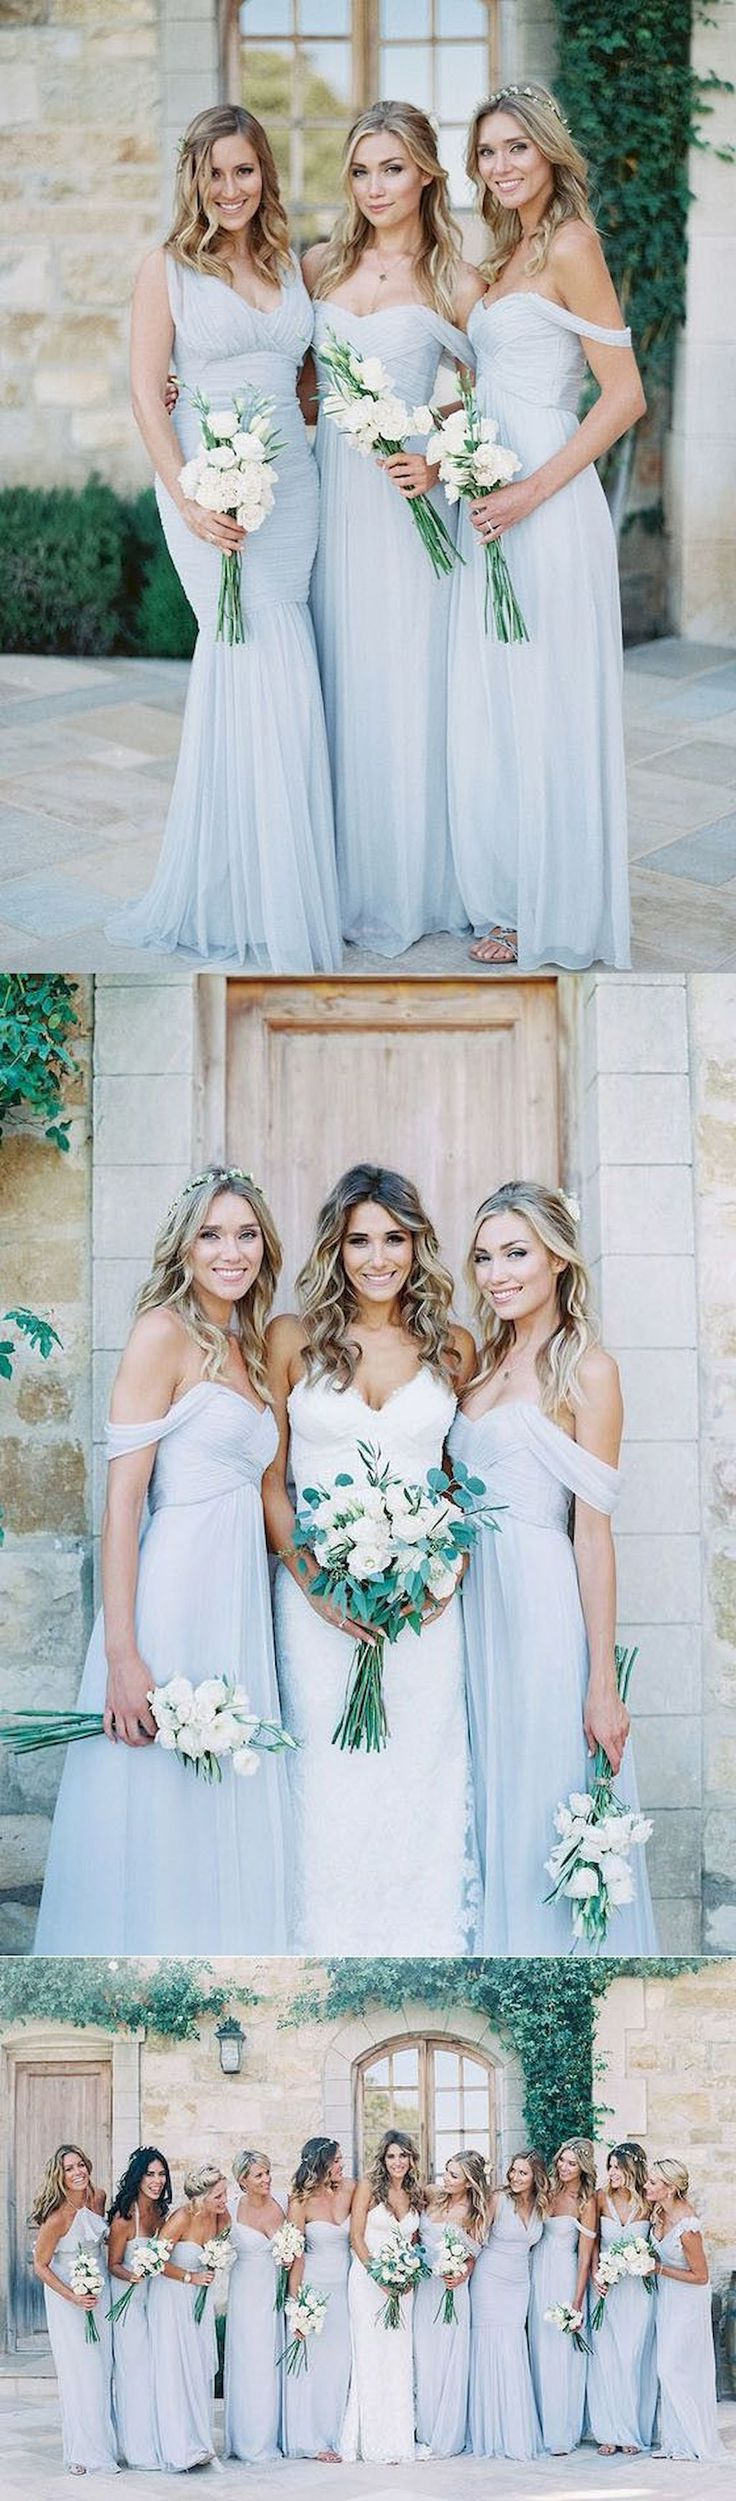 Cool 44 Bridemaids Outfit Ideas That Will make Everyone Look Amazing https://bitecloth.com/2017/10/05/44-bridemaids-outfit-ideas-will-make-everyone-look-amazing/